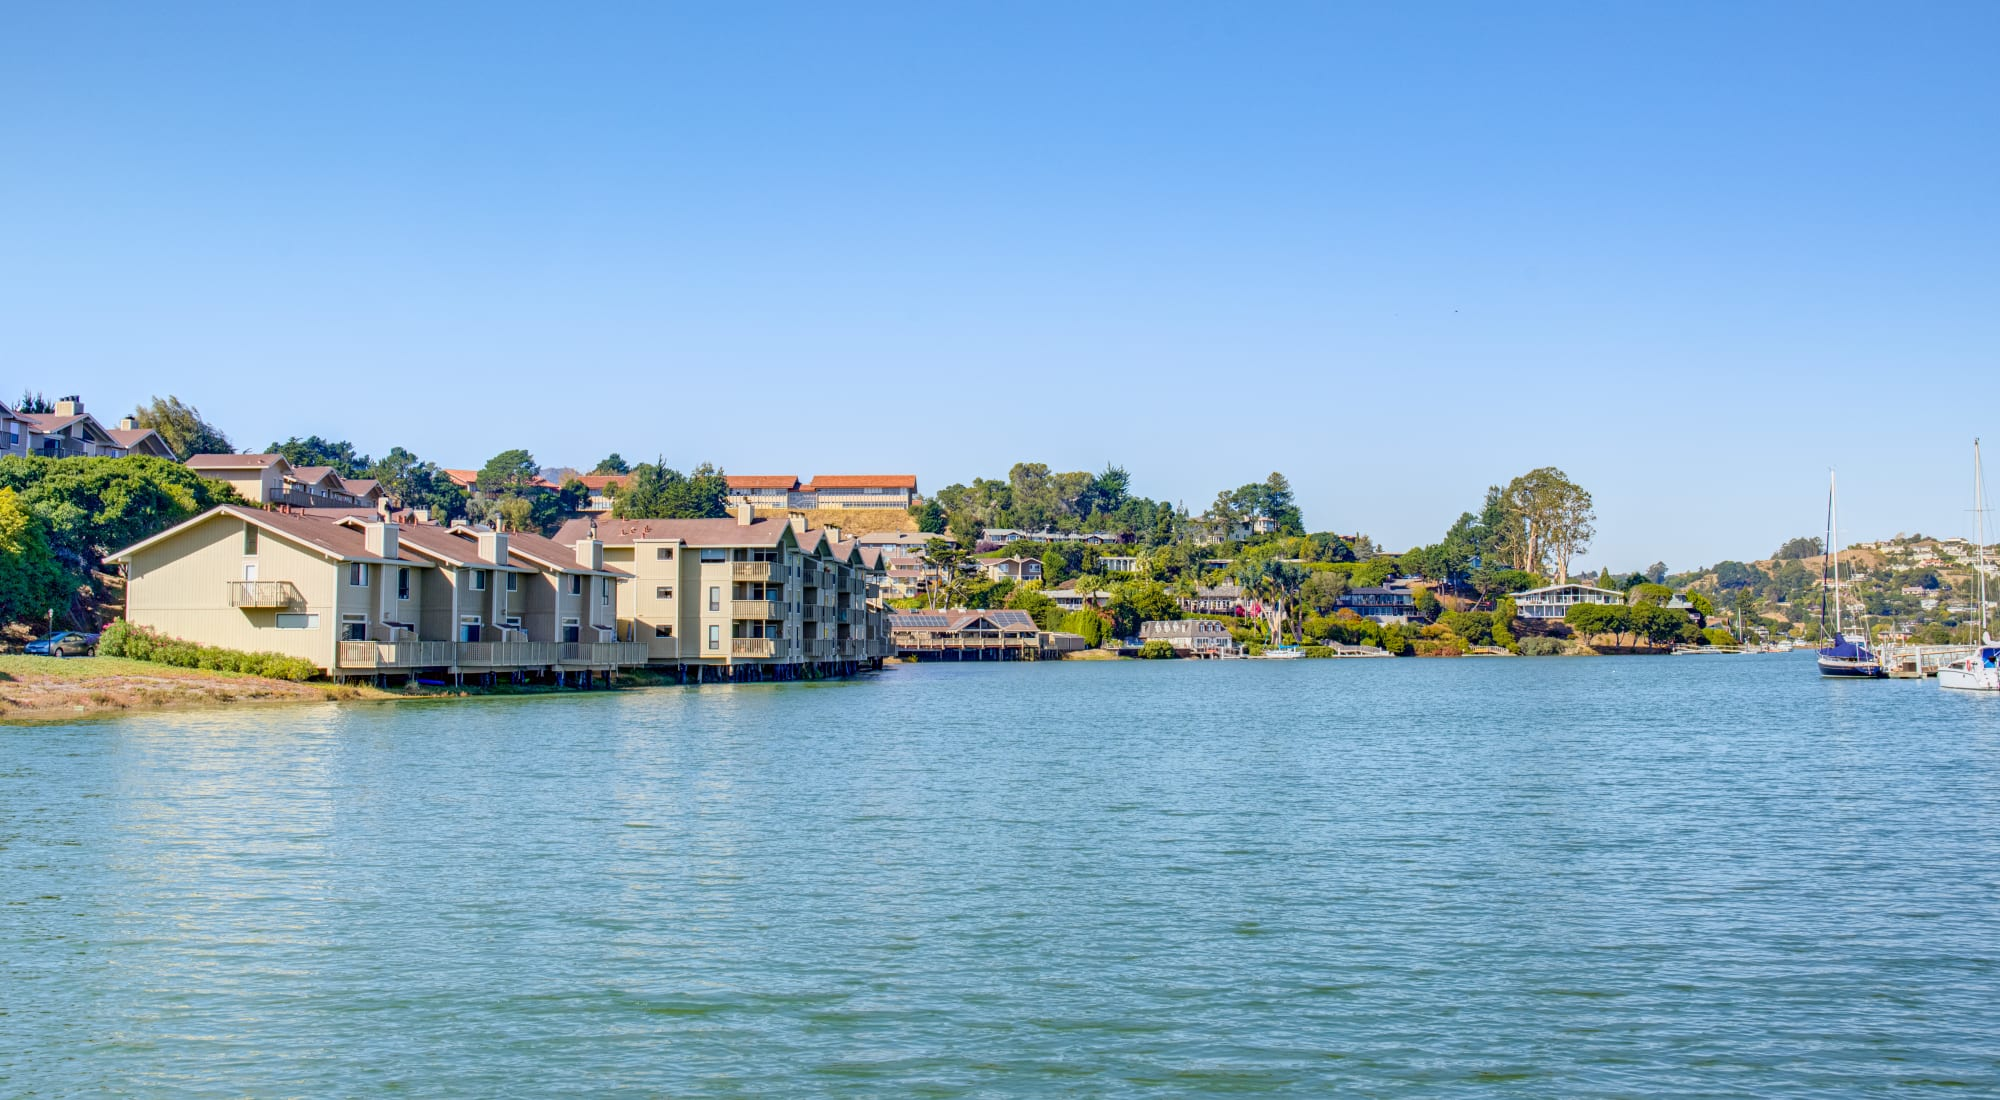 Neighborhood at Harbor Point Apartments in Mill Valley, California